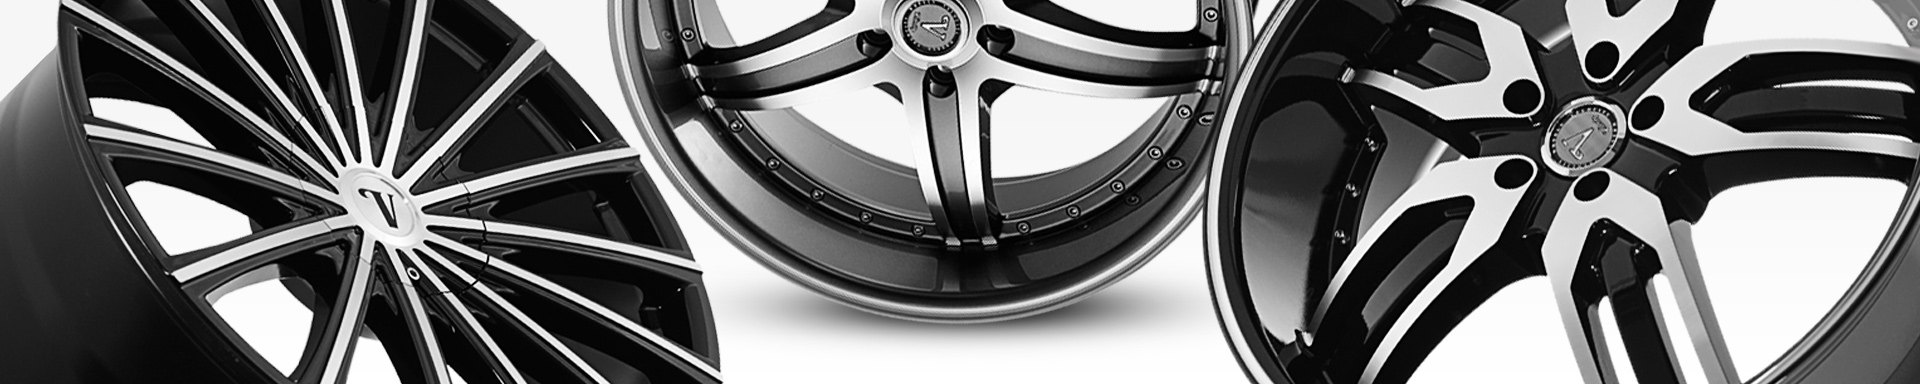 Universal VELOCITY WHEELS & RIMS